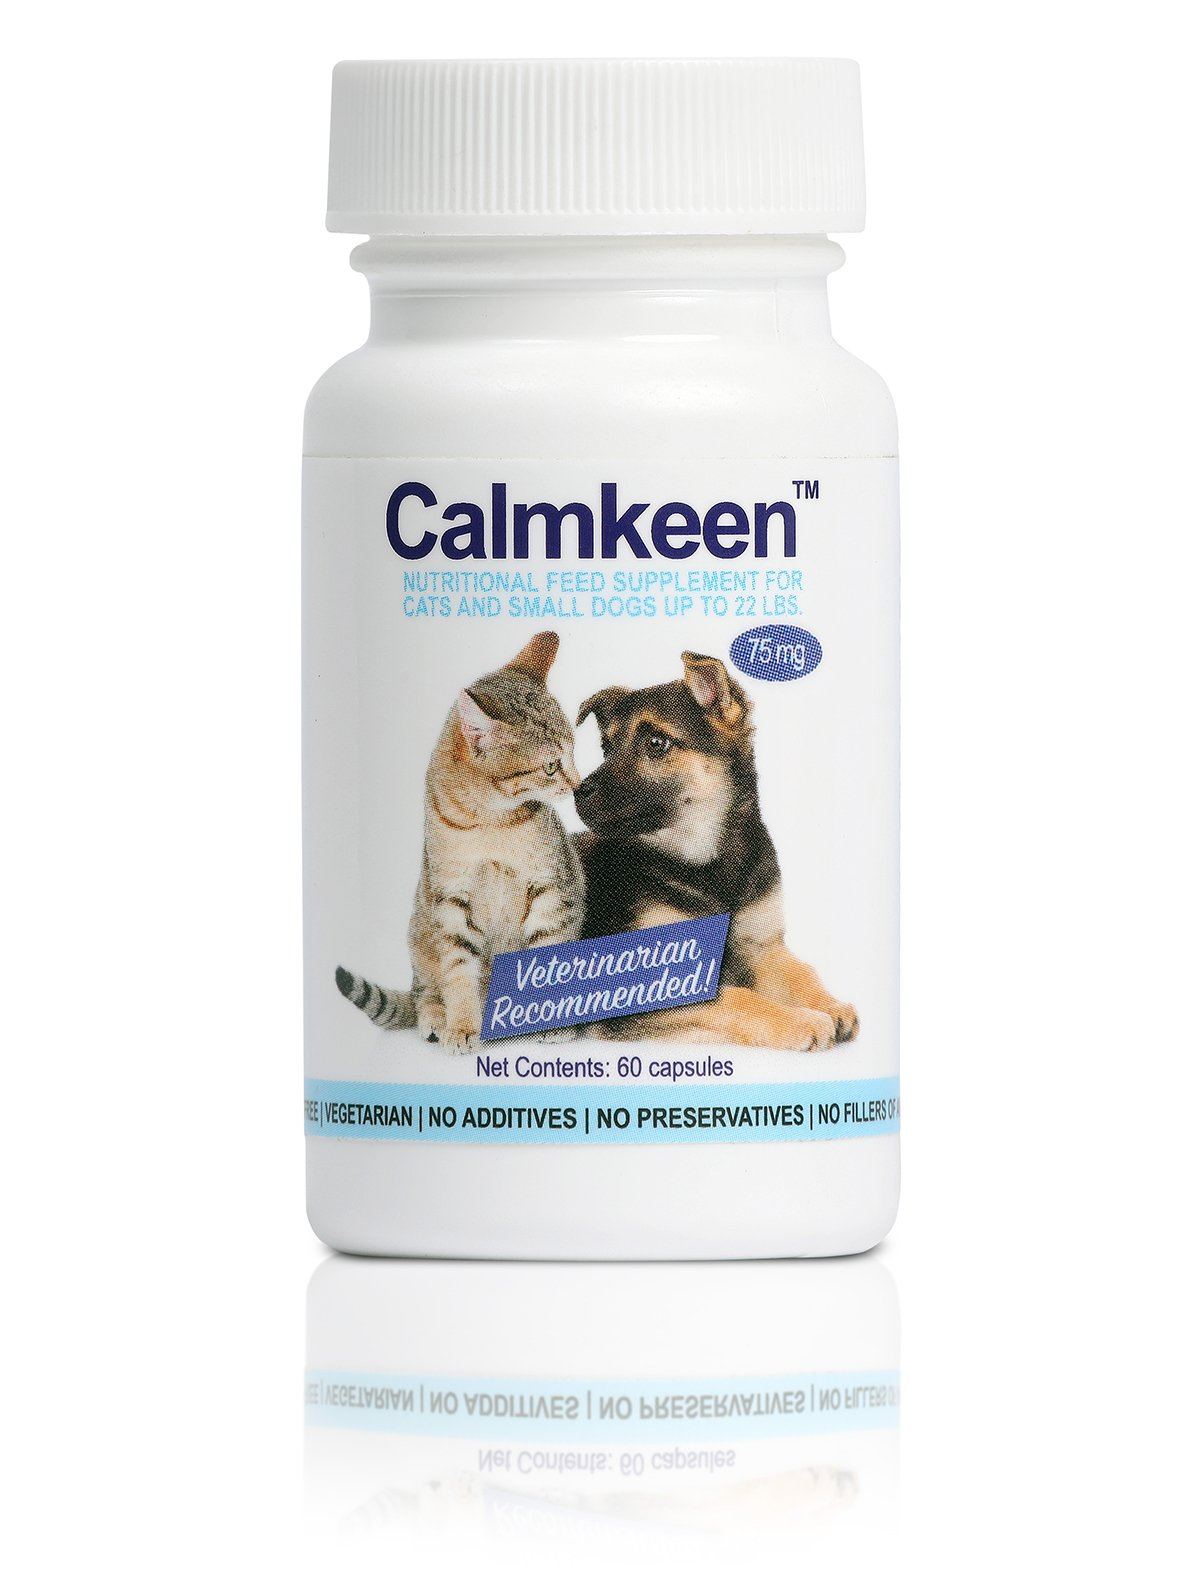 Calmkeen 75 mg 60 Count Nutritional Supplement Small Dogs Cats Up To 22 Pounds (Formerly Calmkene)